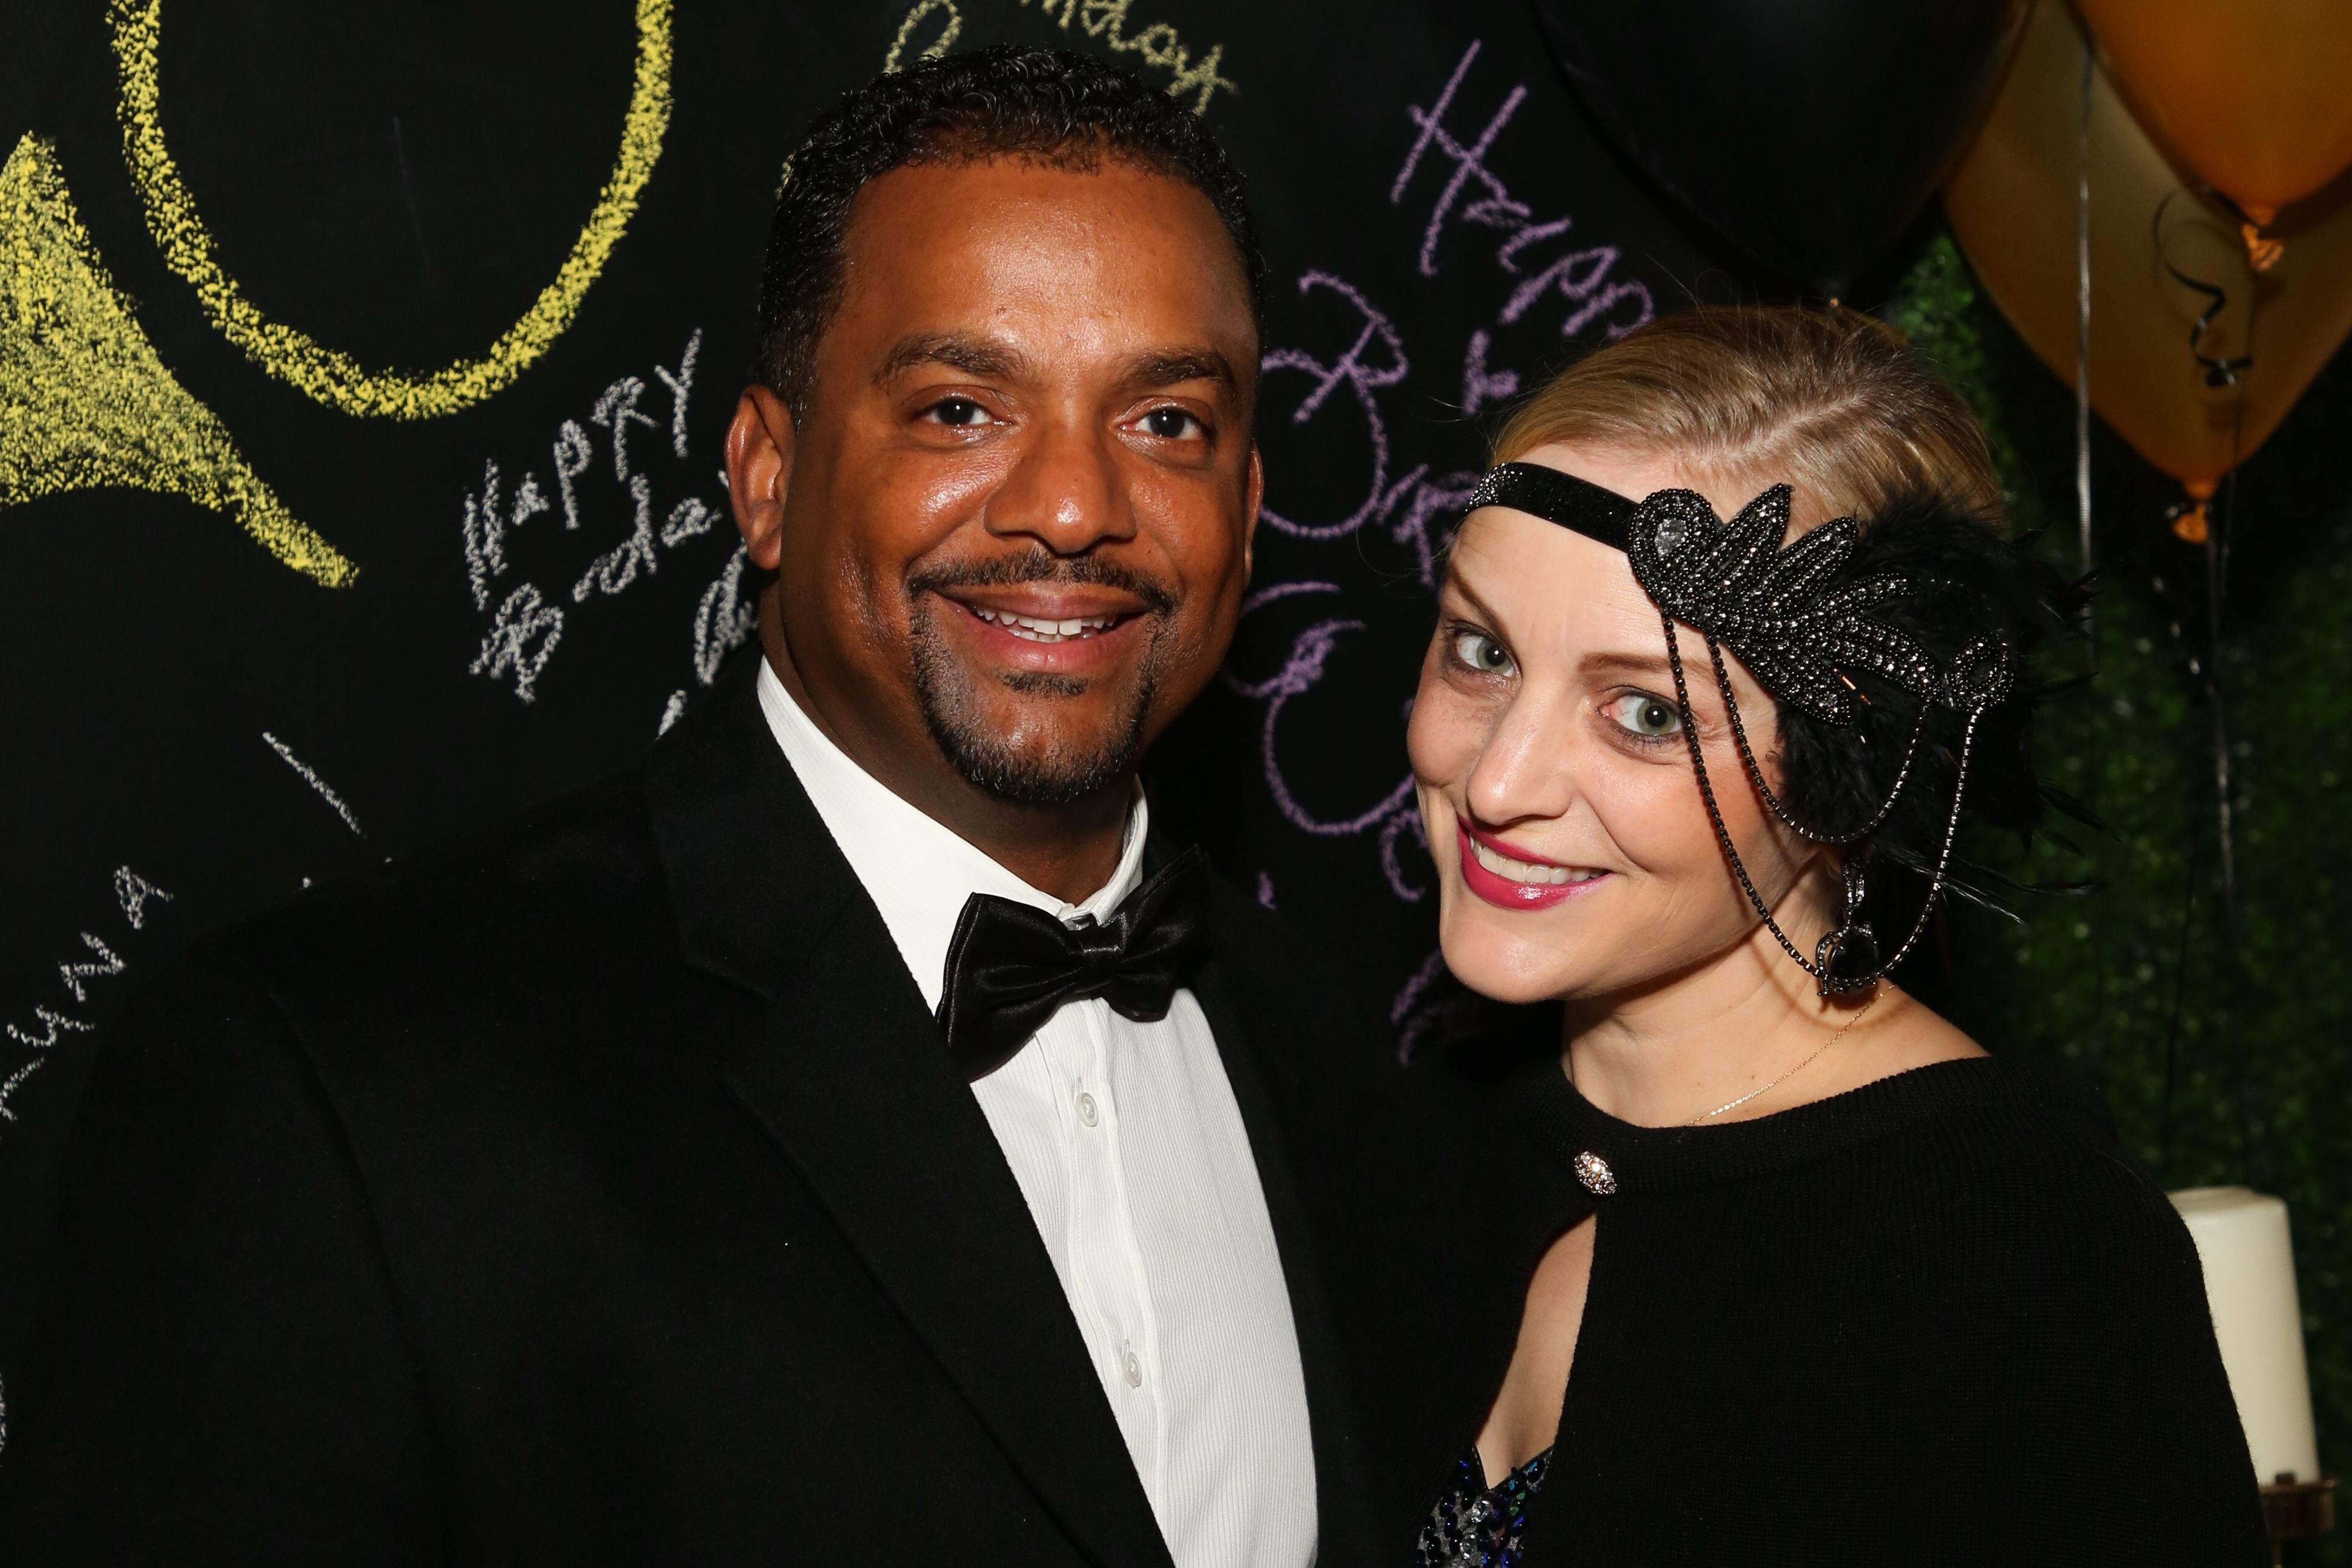 Alfonso and Angela Ribeiro attend a grand birthday celebration | Source: Getty Images